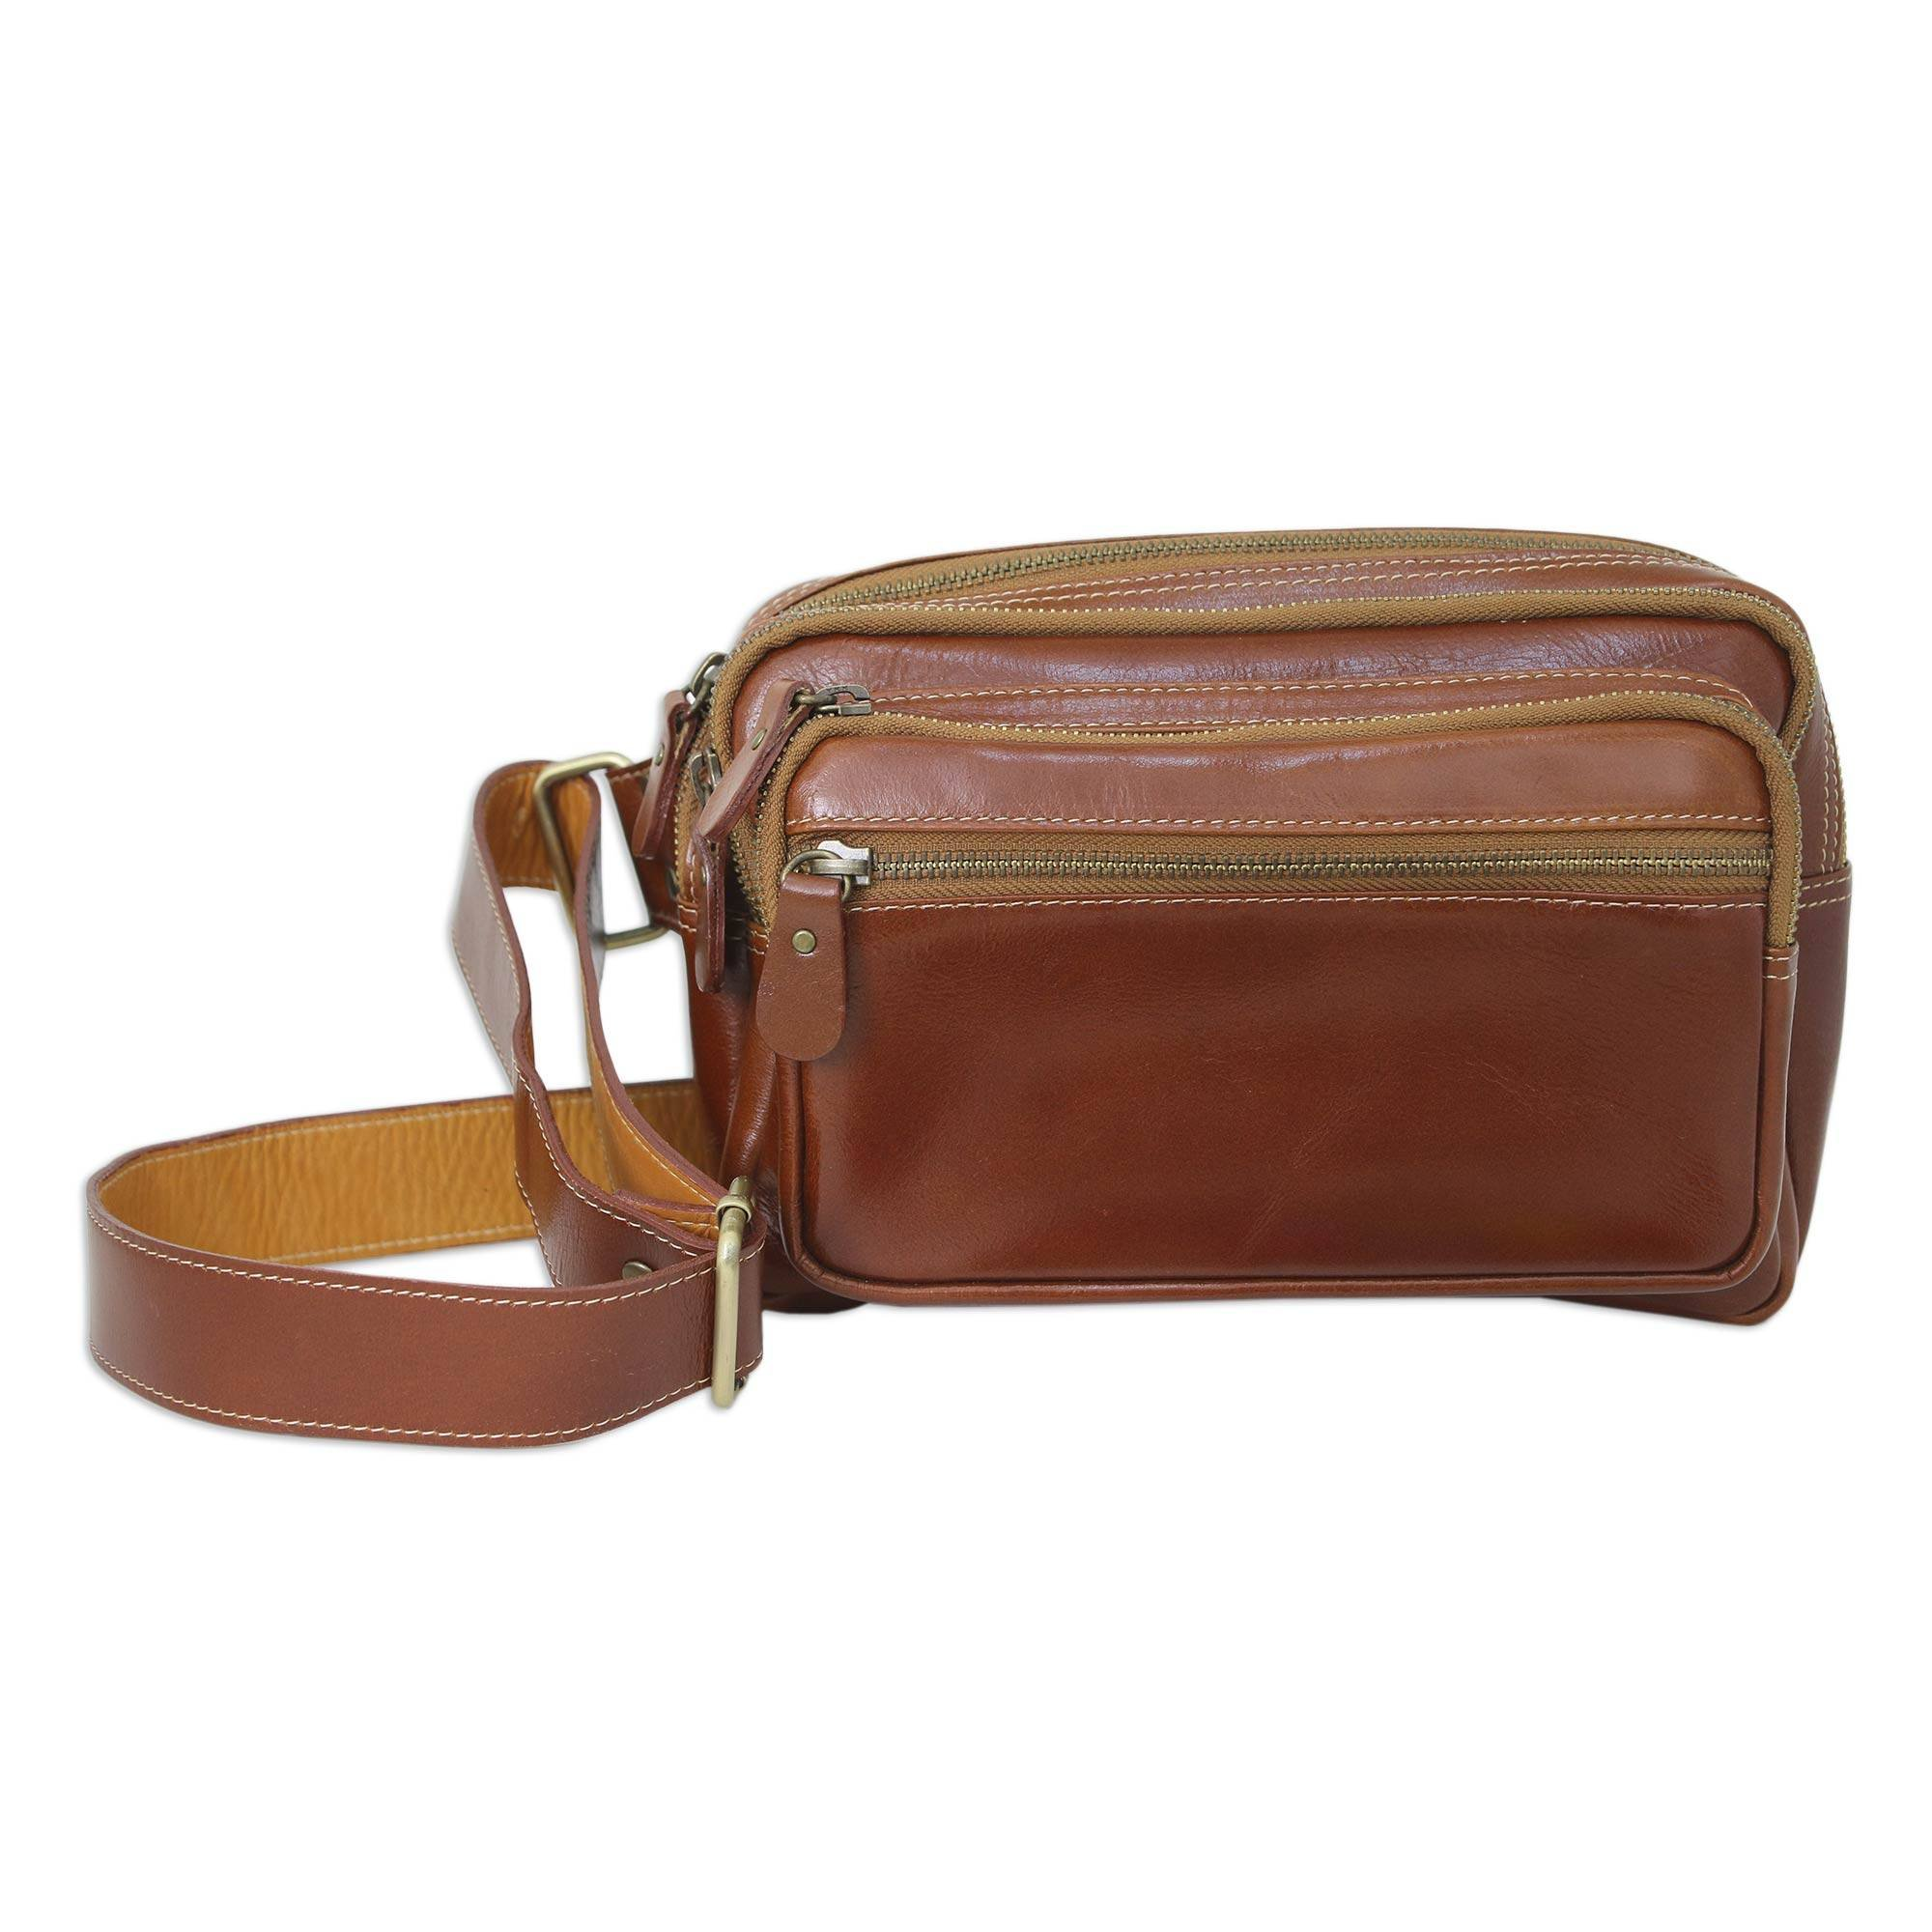 NOVICA Light Brown Leather Waist Pack, 'Let's Walk' by NOVICA